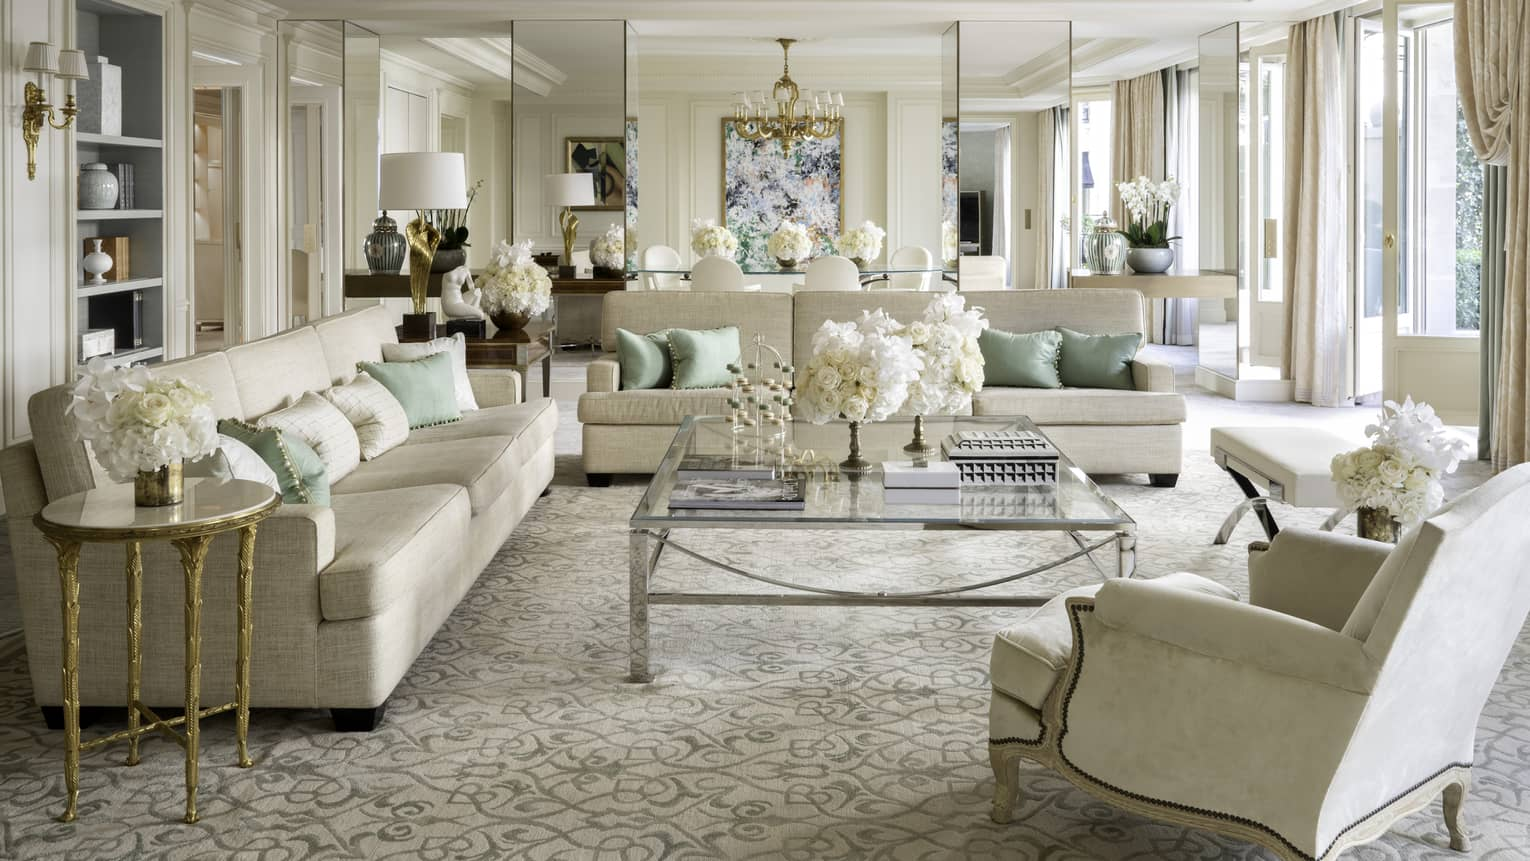 Royal suite with two couches, an armchair, coffee table, cream & teal accents, natural light